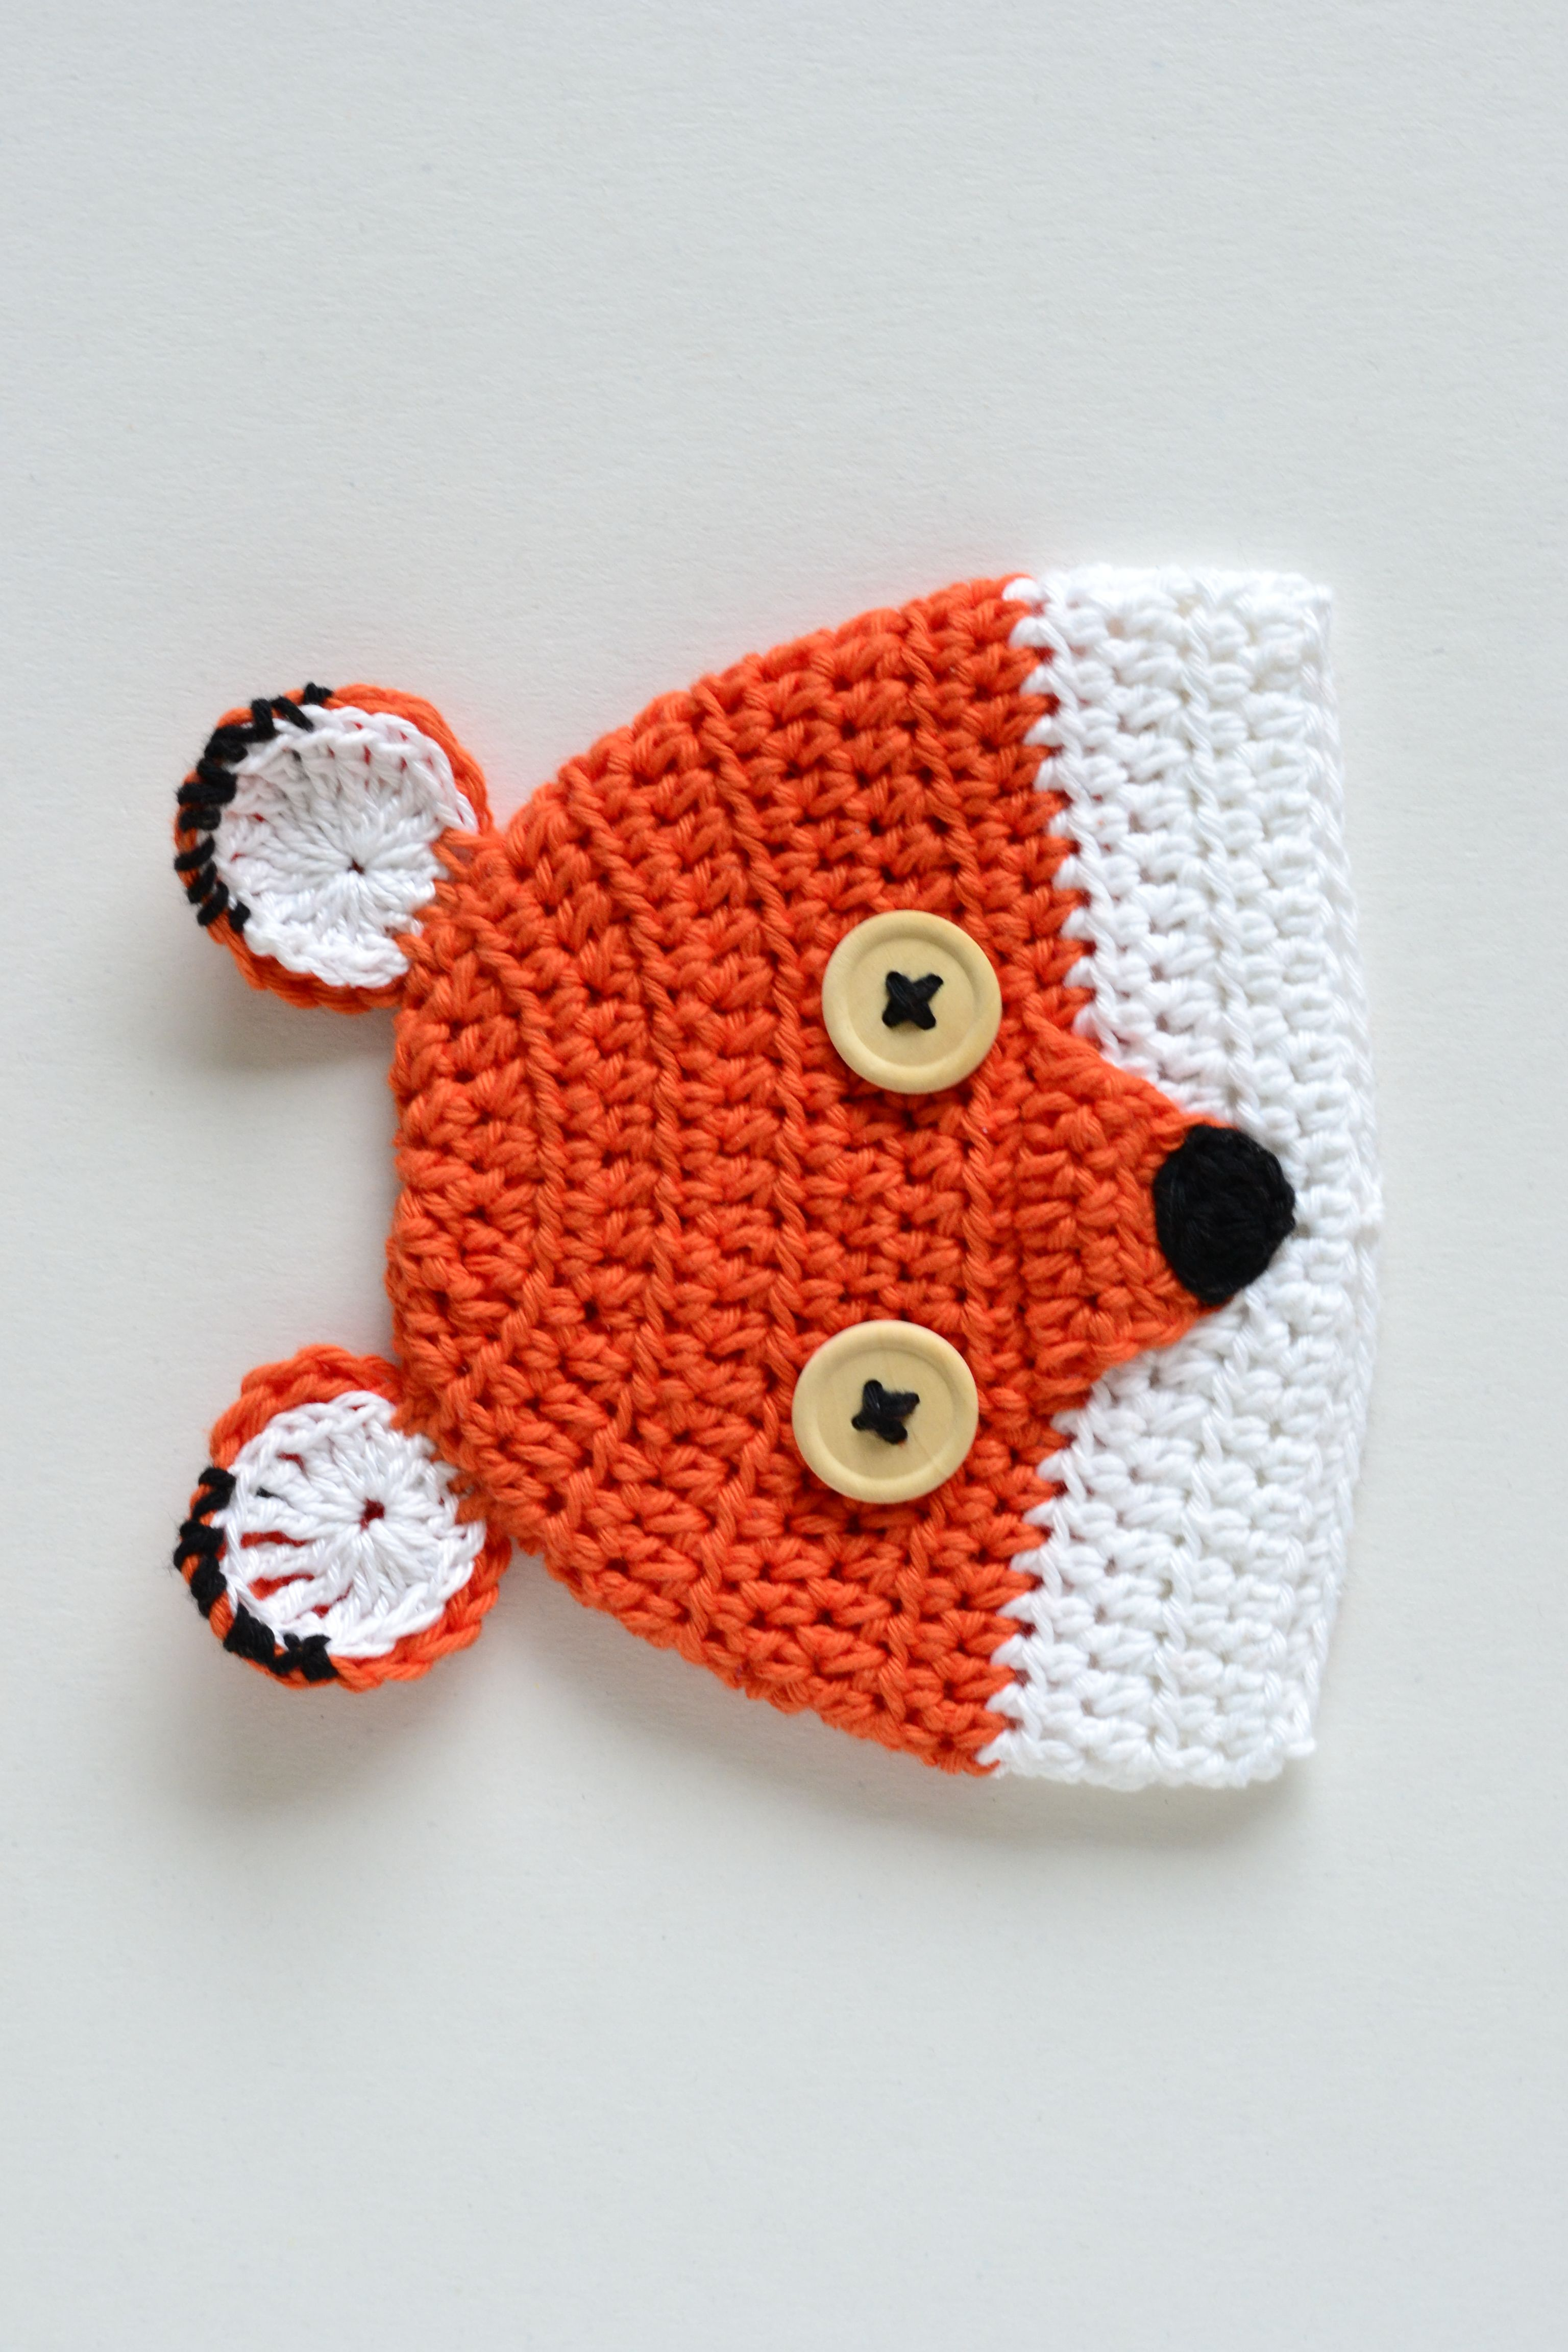 Croby patterns free crochet pattern cute fox newborn photo croby patterns free crochet pattern cute fox bankloansurffo Image collections